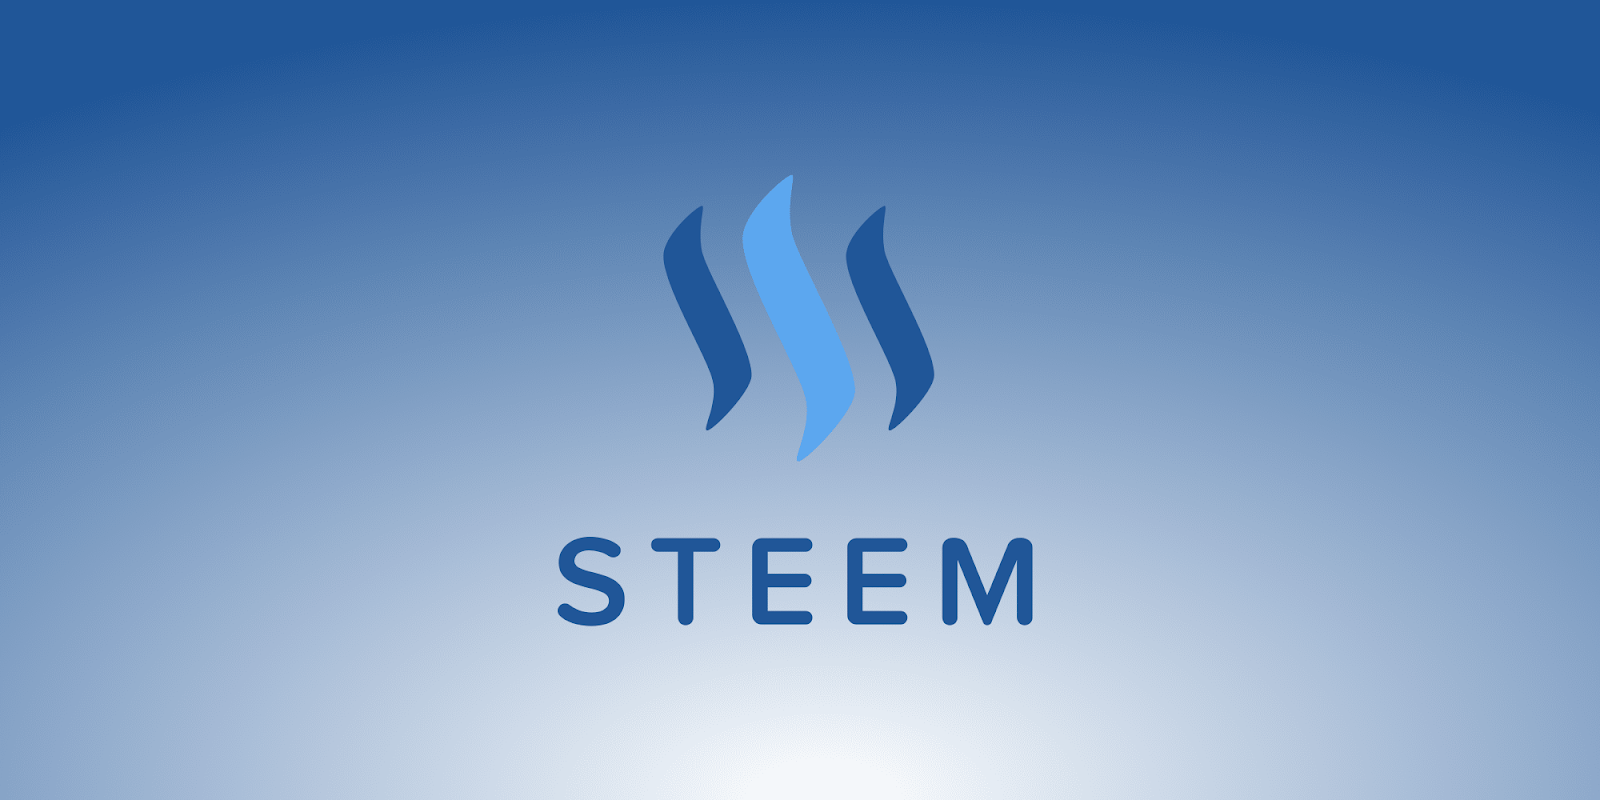 steem cryptocurrency wallet